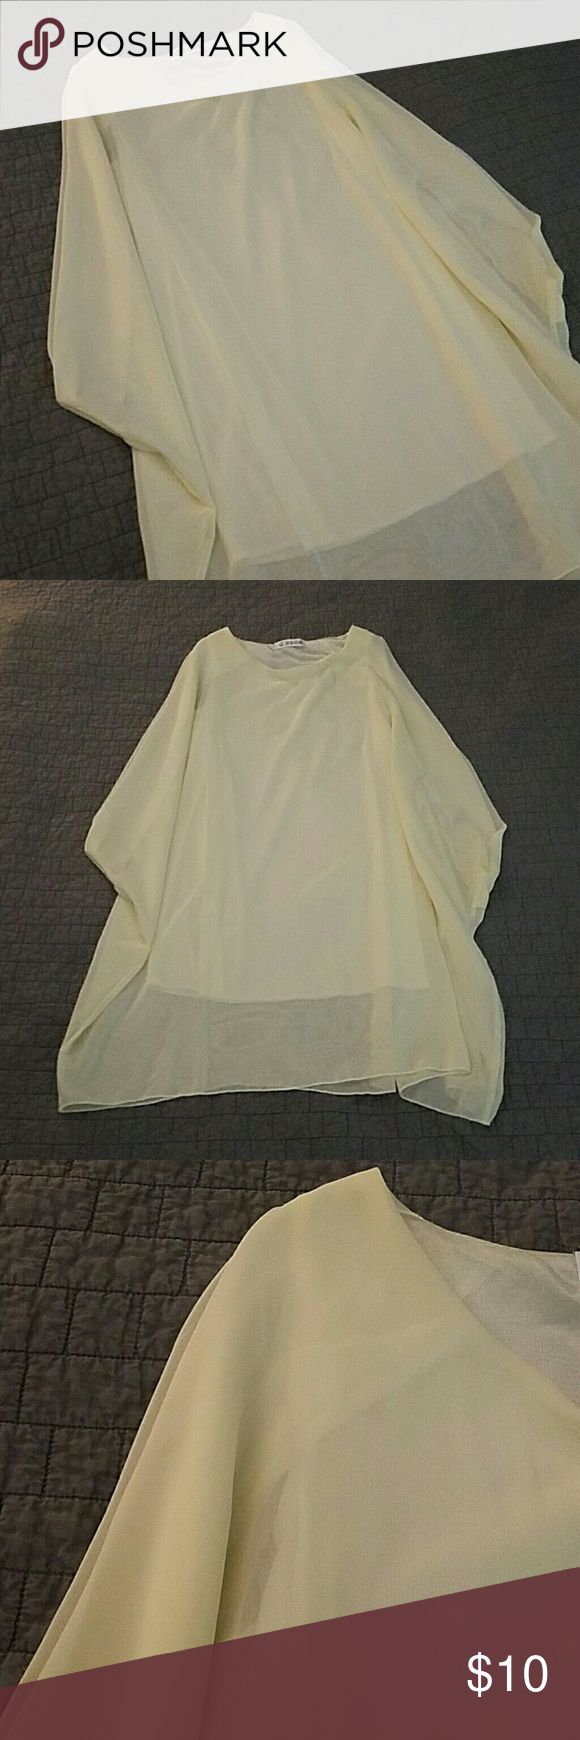 Cream flowy dress Cream flowy dress, loose fitting, great for a night out with the girls Dresses Midi